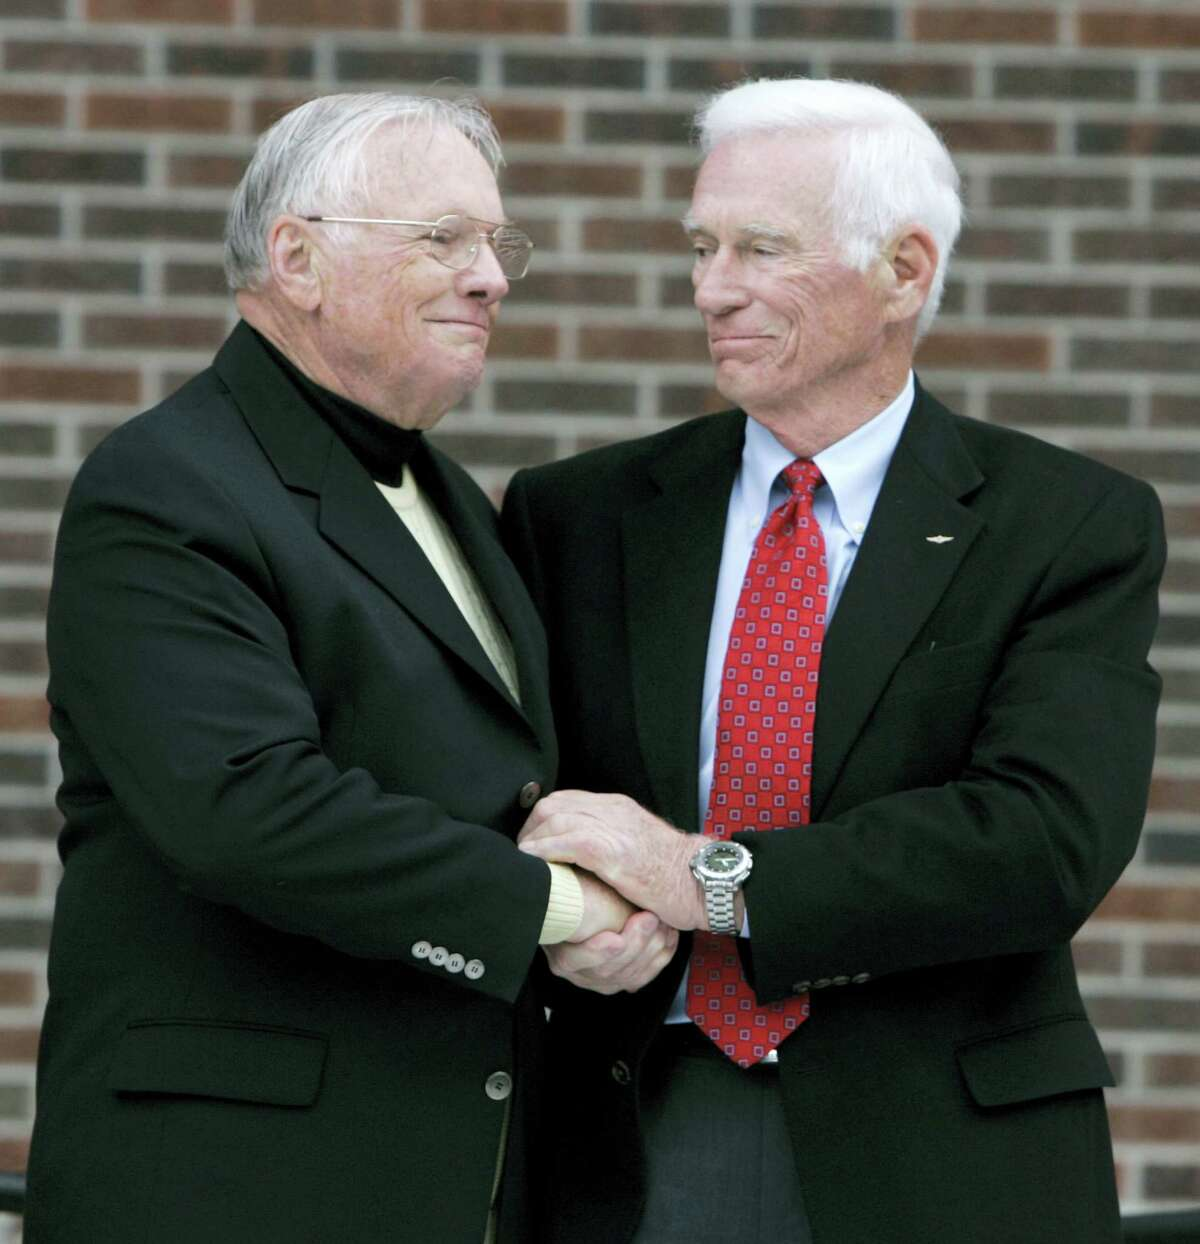 FILE - In a Oct. 27, 2007 file photo, former astronaut Neil Armstrong, left, is congratulated by fellow ex-astronaut Gene Cernan following the dedication ceremony of the Neil Armstrong Hall of Engineering at Purdue University in West Lafayette, Ind. NASA announced that former astronaut Gene Cernan, the last man to walk on the moon, died Monday, Jan. 16, 2017, surrounded by his family. He was 82.